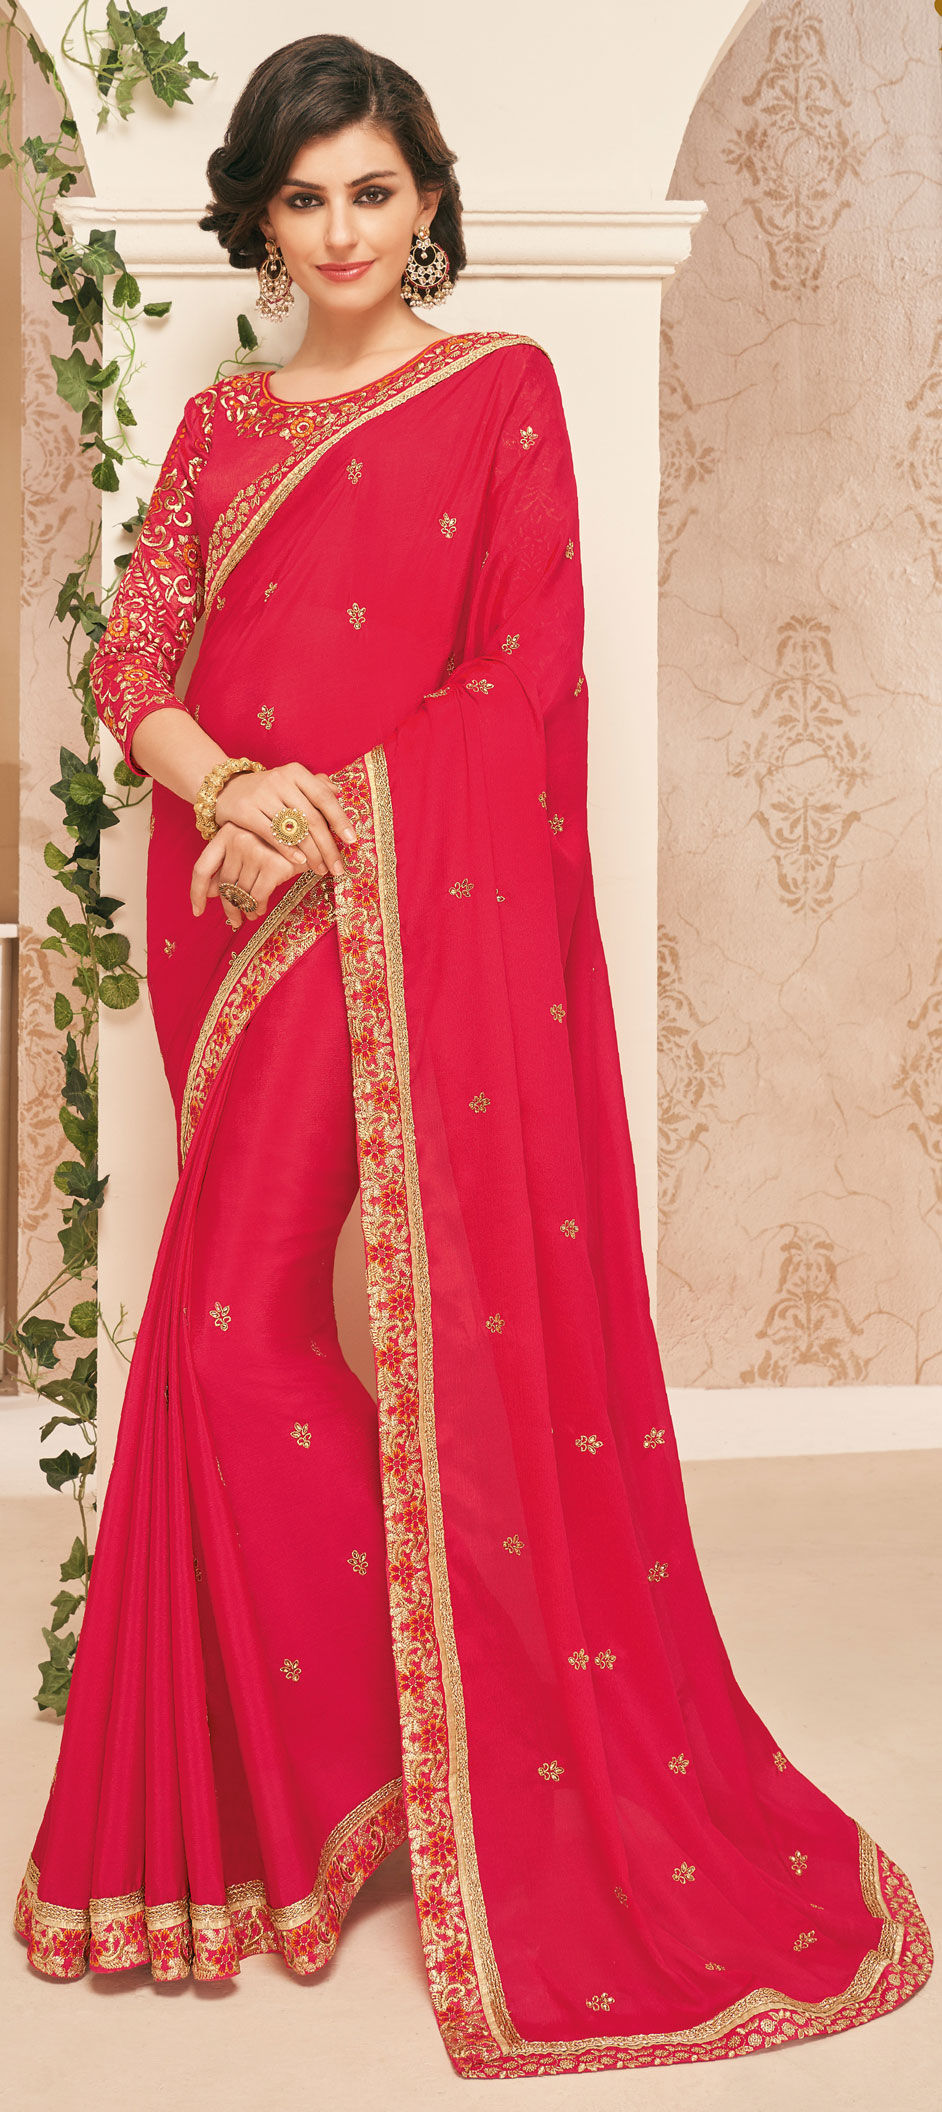 a3b5f735e5b341 750976: Red and Maroon color family Embroidered Sarees, Party Wear ...